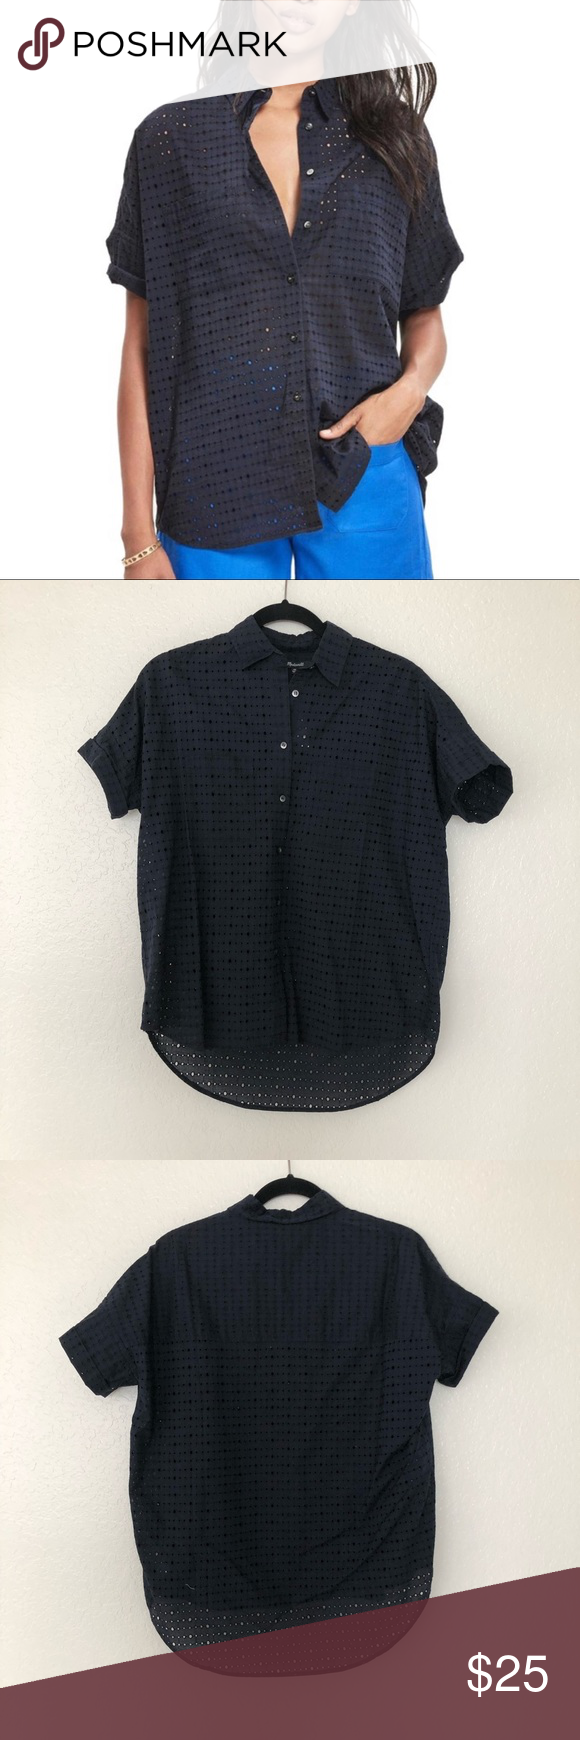 147688a2f Madewell Navy Blue Eyelet Courier Shirt NWT Madewell Eyelet Courier Shirt.  Size XS (oversized